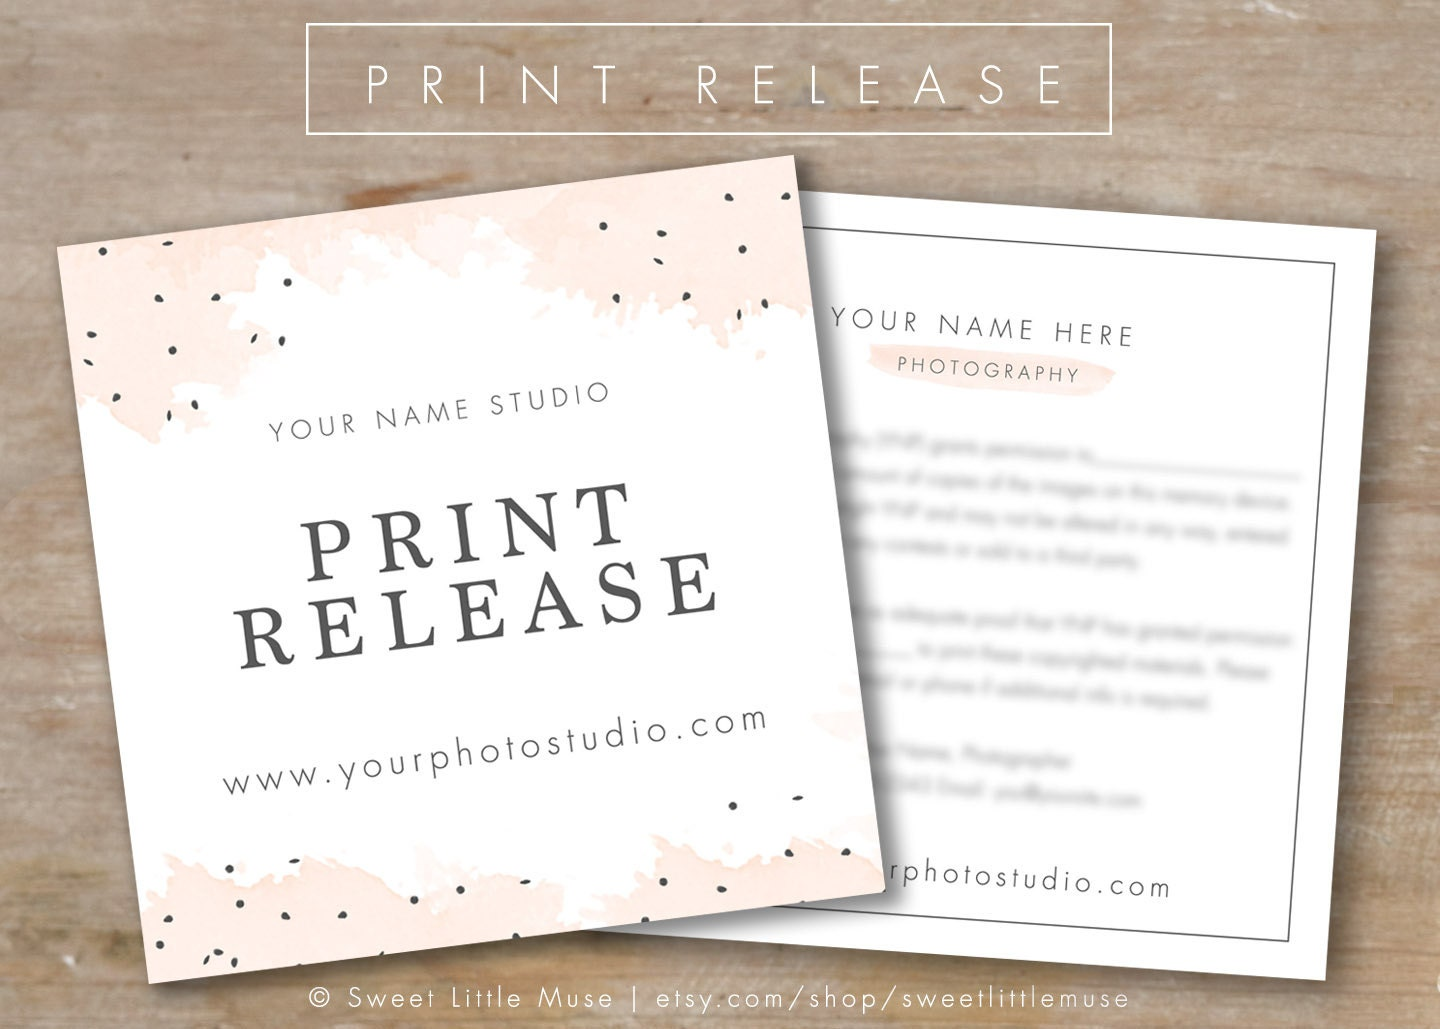 Print Release Template Images - Template Design Ideas